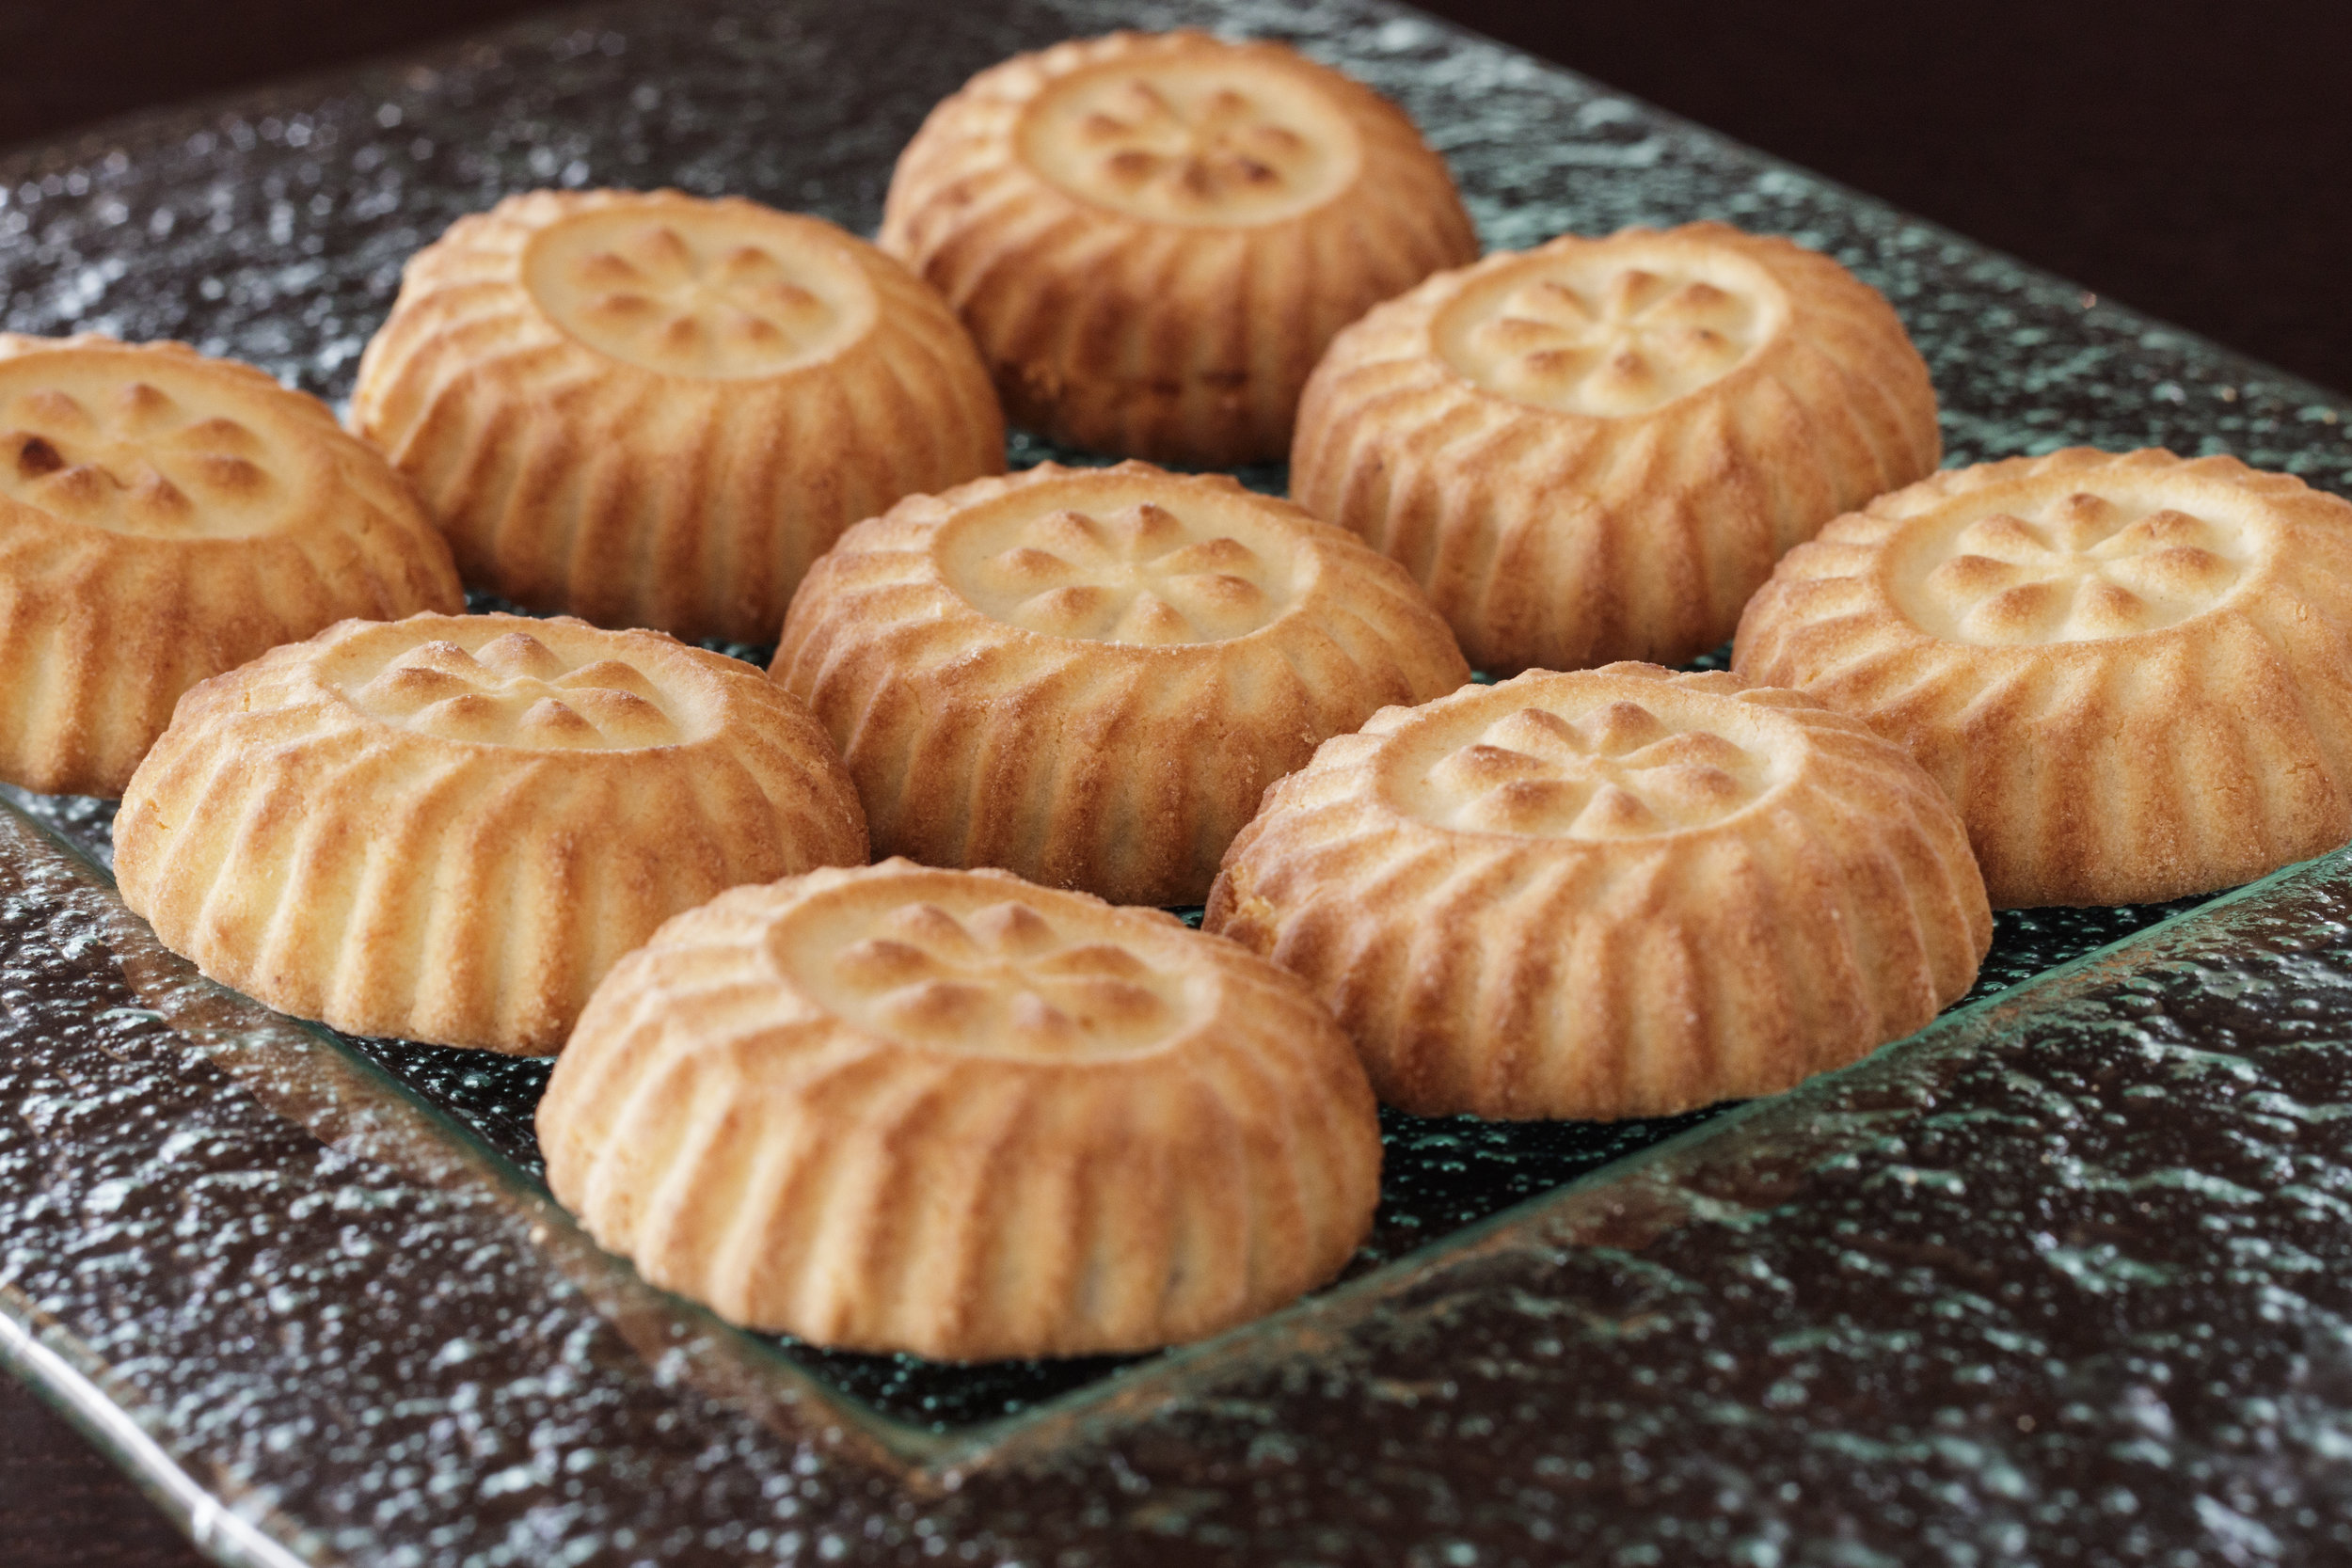 Traditional ArabianDelights - Best served with tea or coffee, maamoul (date cookies) are an all-time favourite both for special occasions or as a daily, nutritious snack.